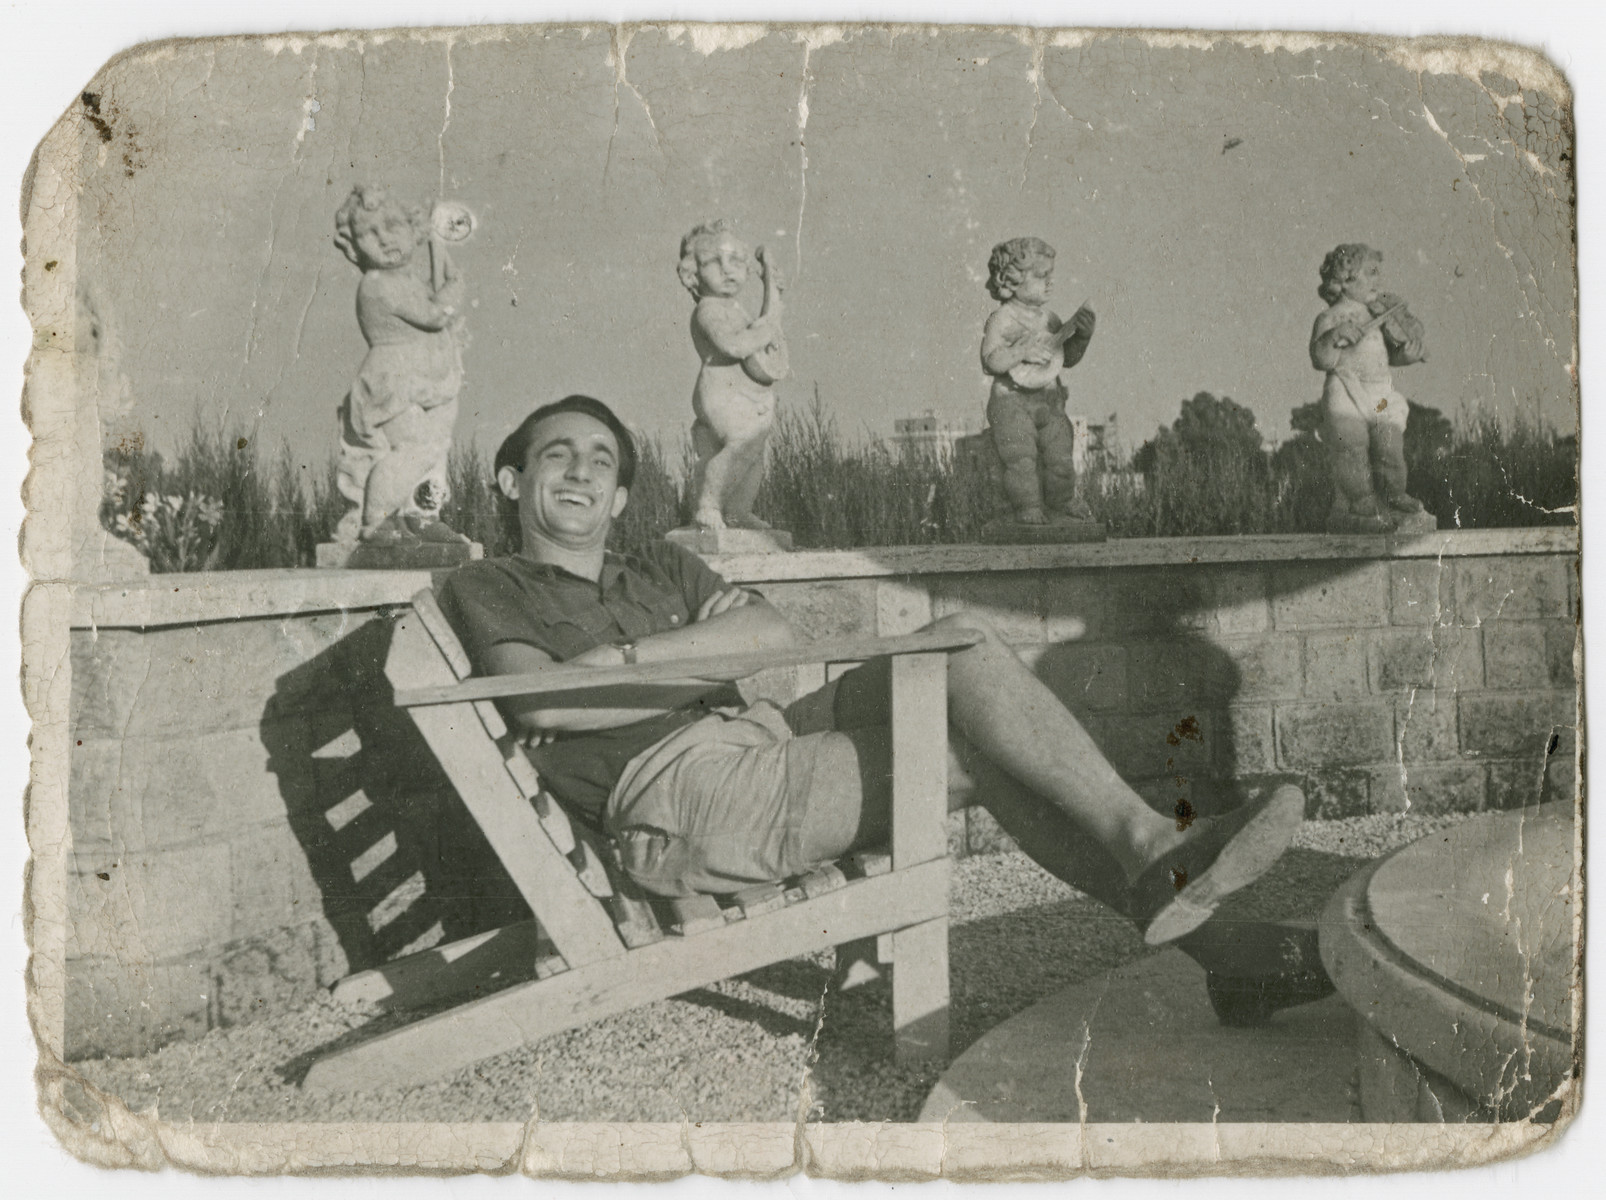 Zelig Appel relaxes on a patio in Italy.